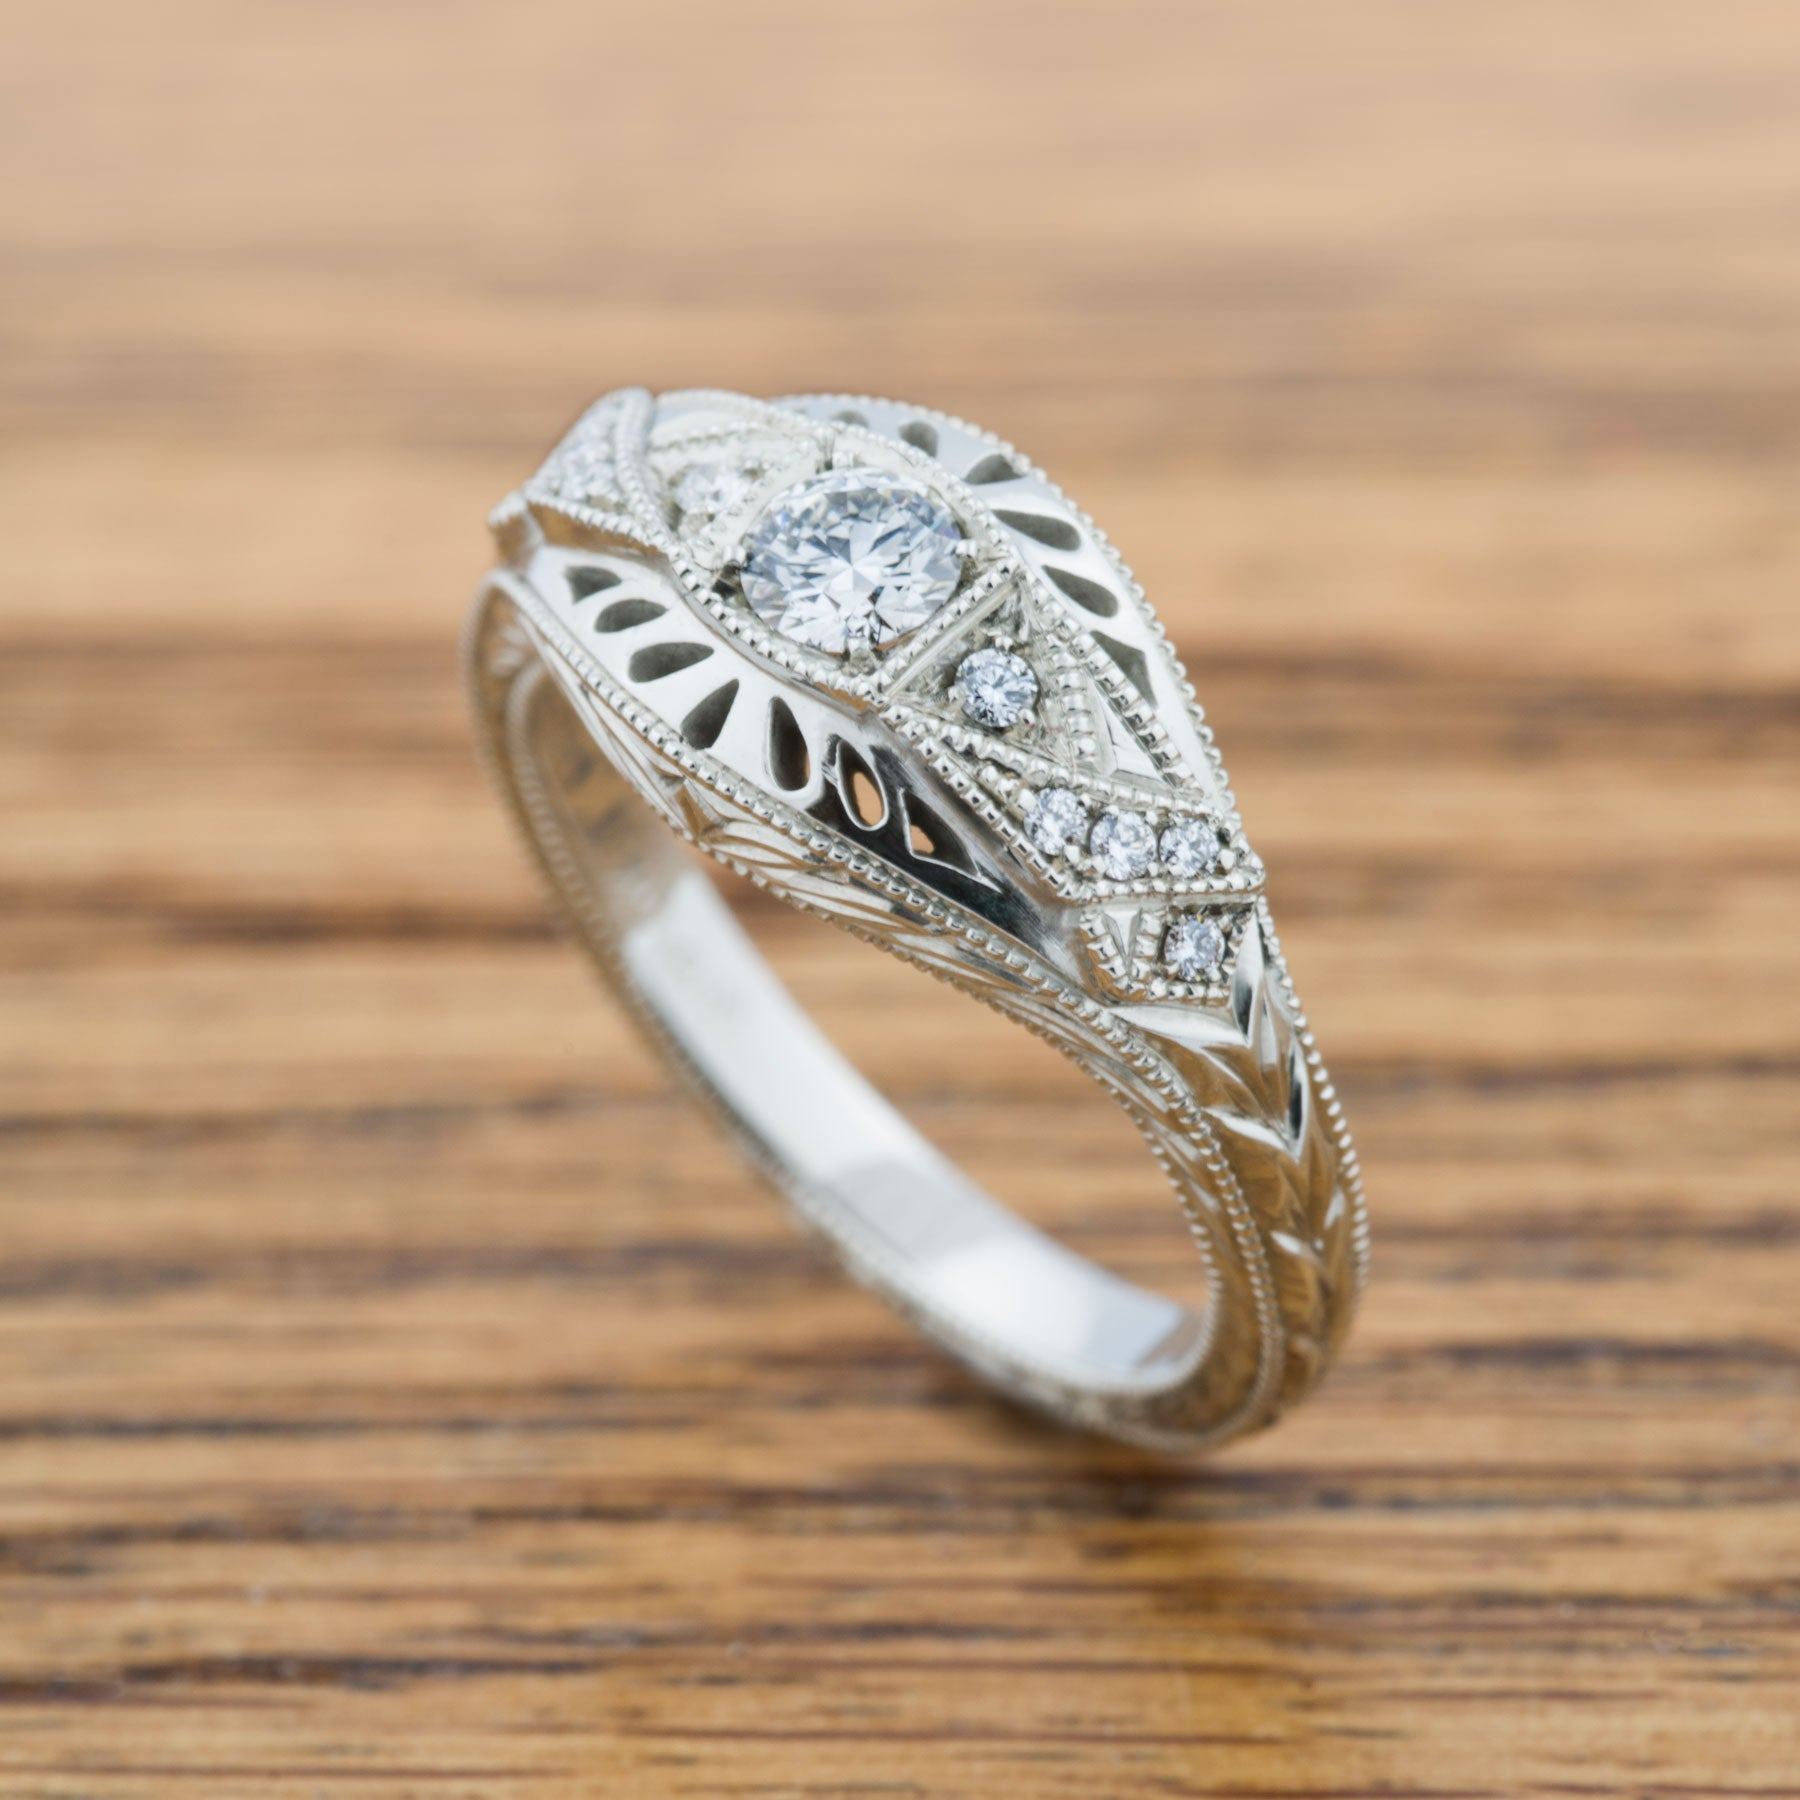 Eira Diamond Engagement Ring - Era Design Vancouver